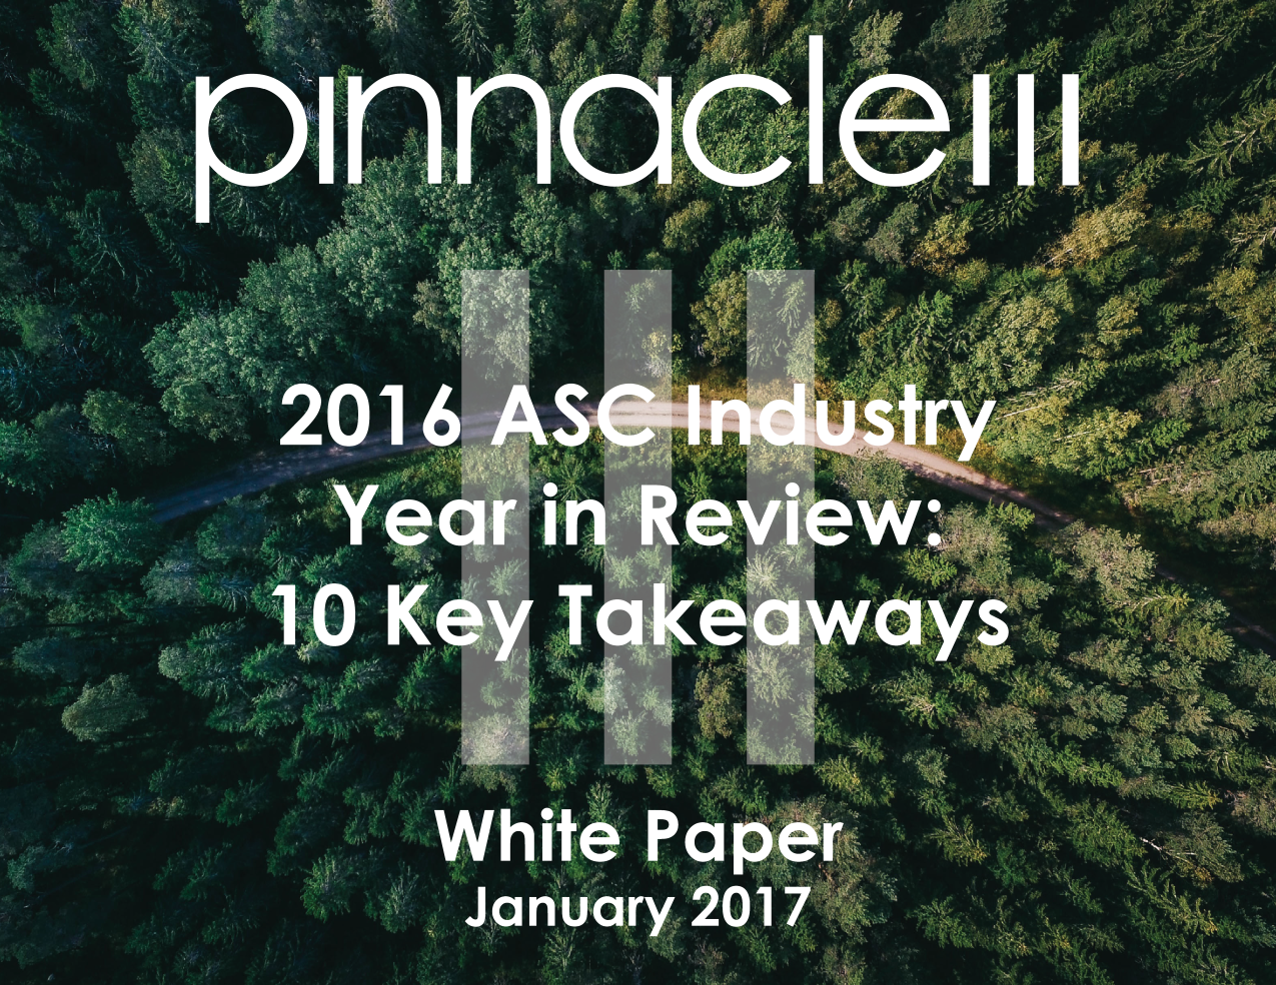 2016 ASC Industry Year in Review